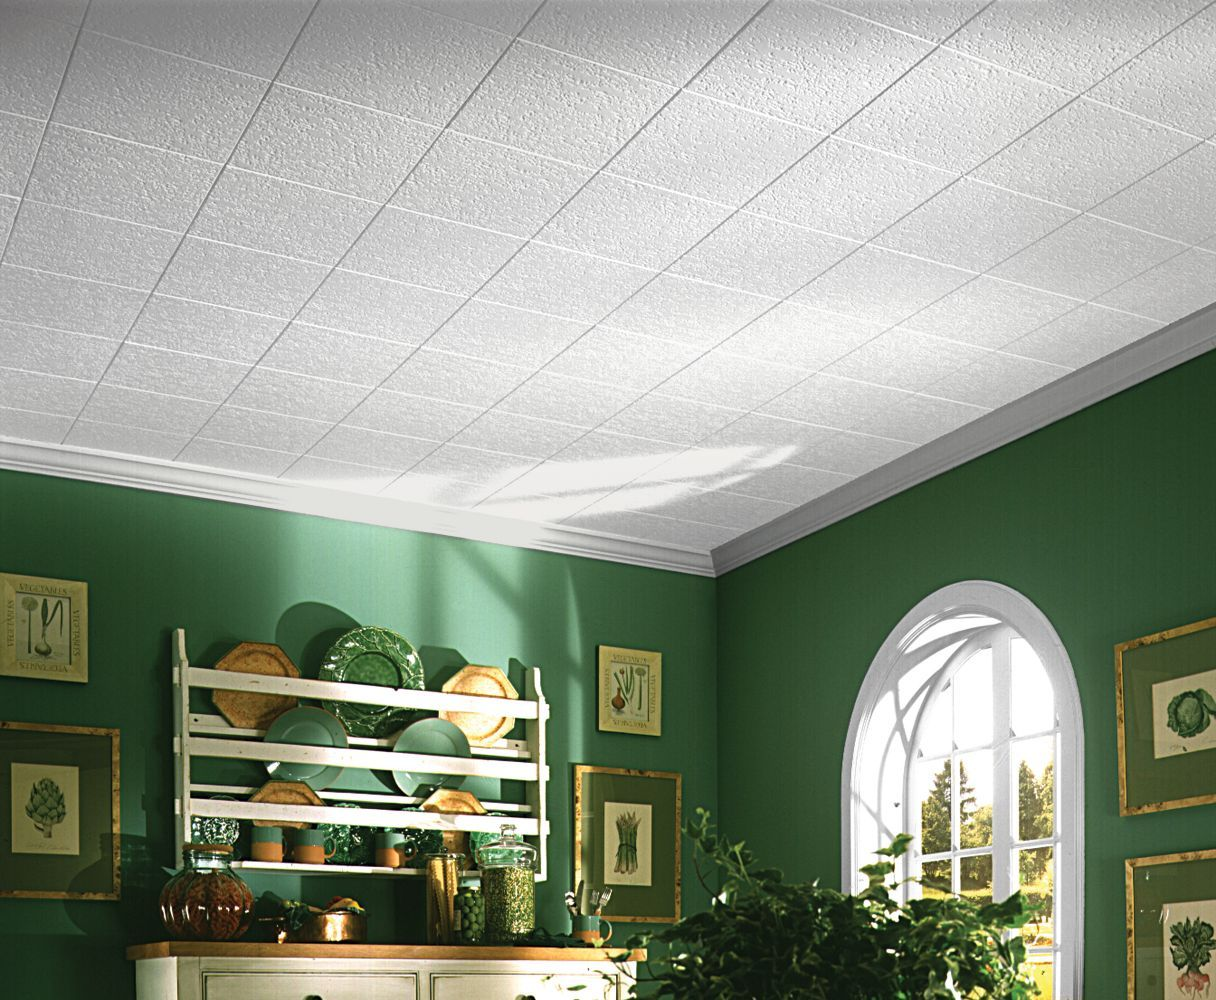 1134 impression is a paintable ceilings by armstrong achieve the impression is a paintable ceilings by armstrong achieve the popular look of a stucco plaster ceilings with homestyle x impression ceiling tile dailygadgetfo Gallery